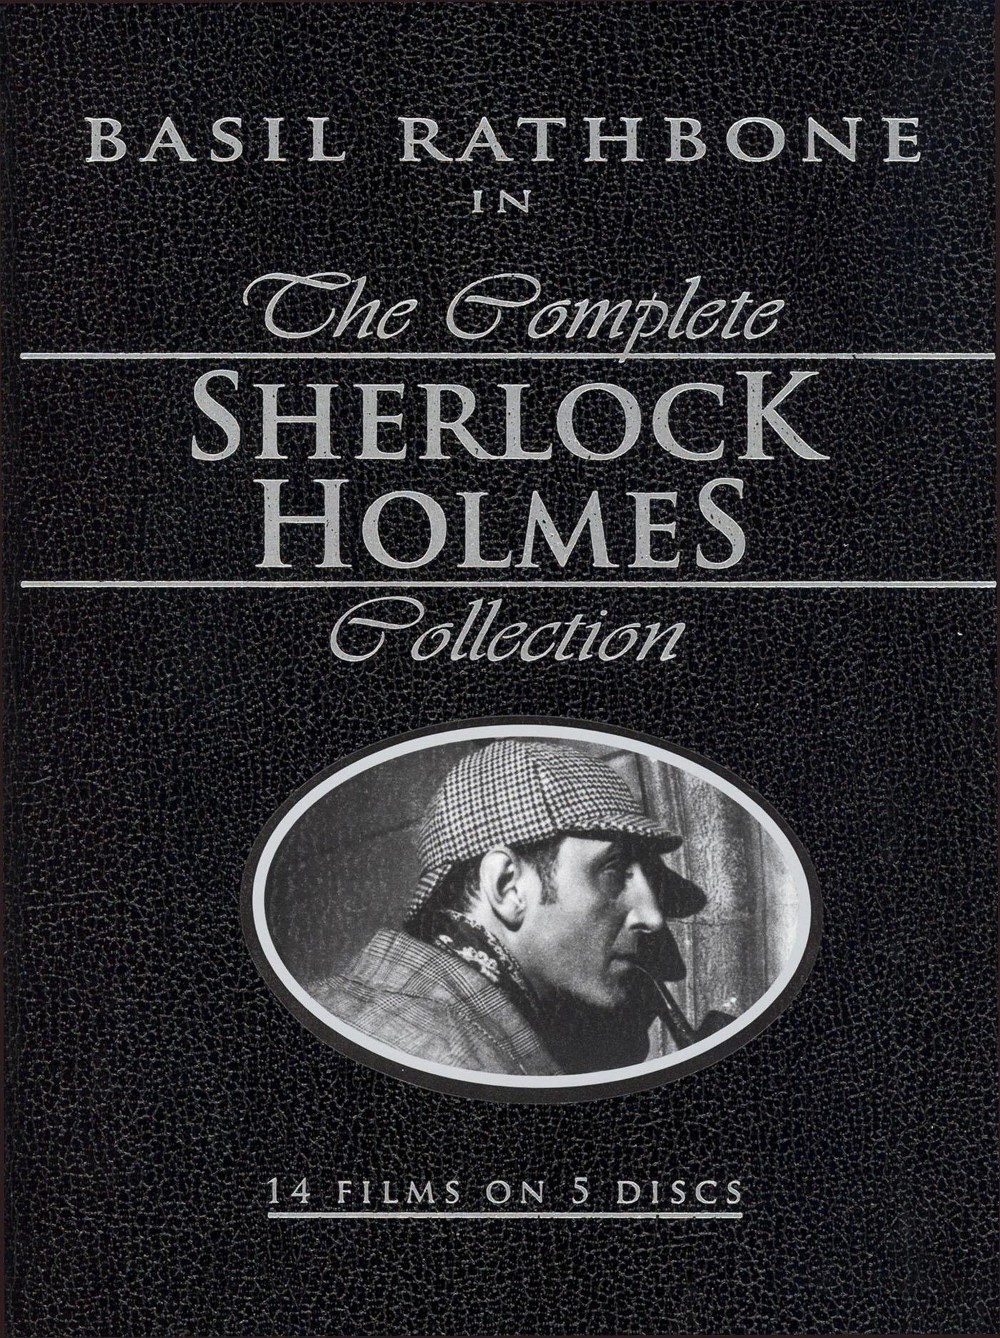 Complete sherlock holmes collection (Dvd)